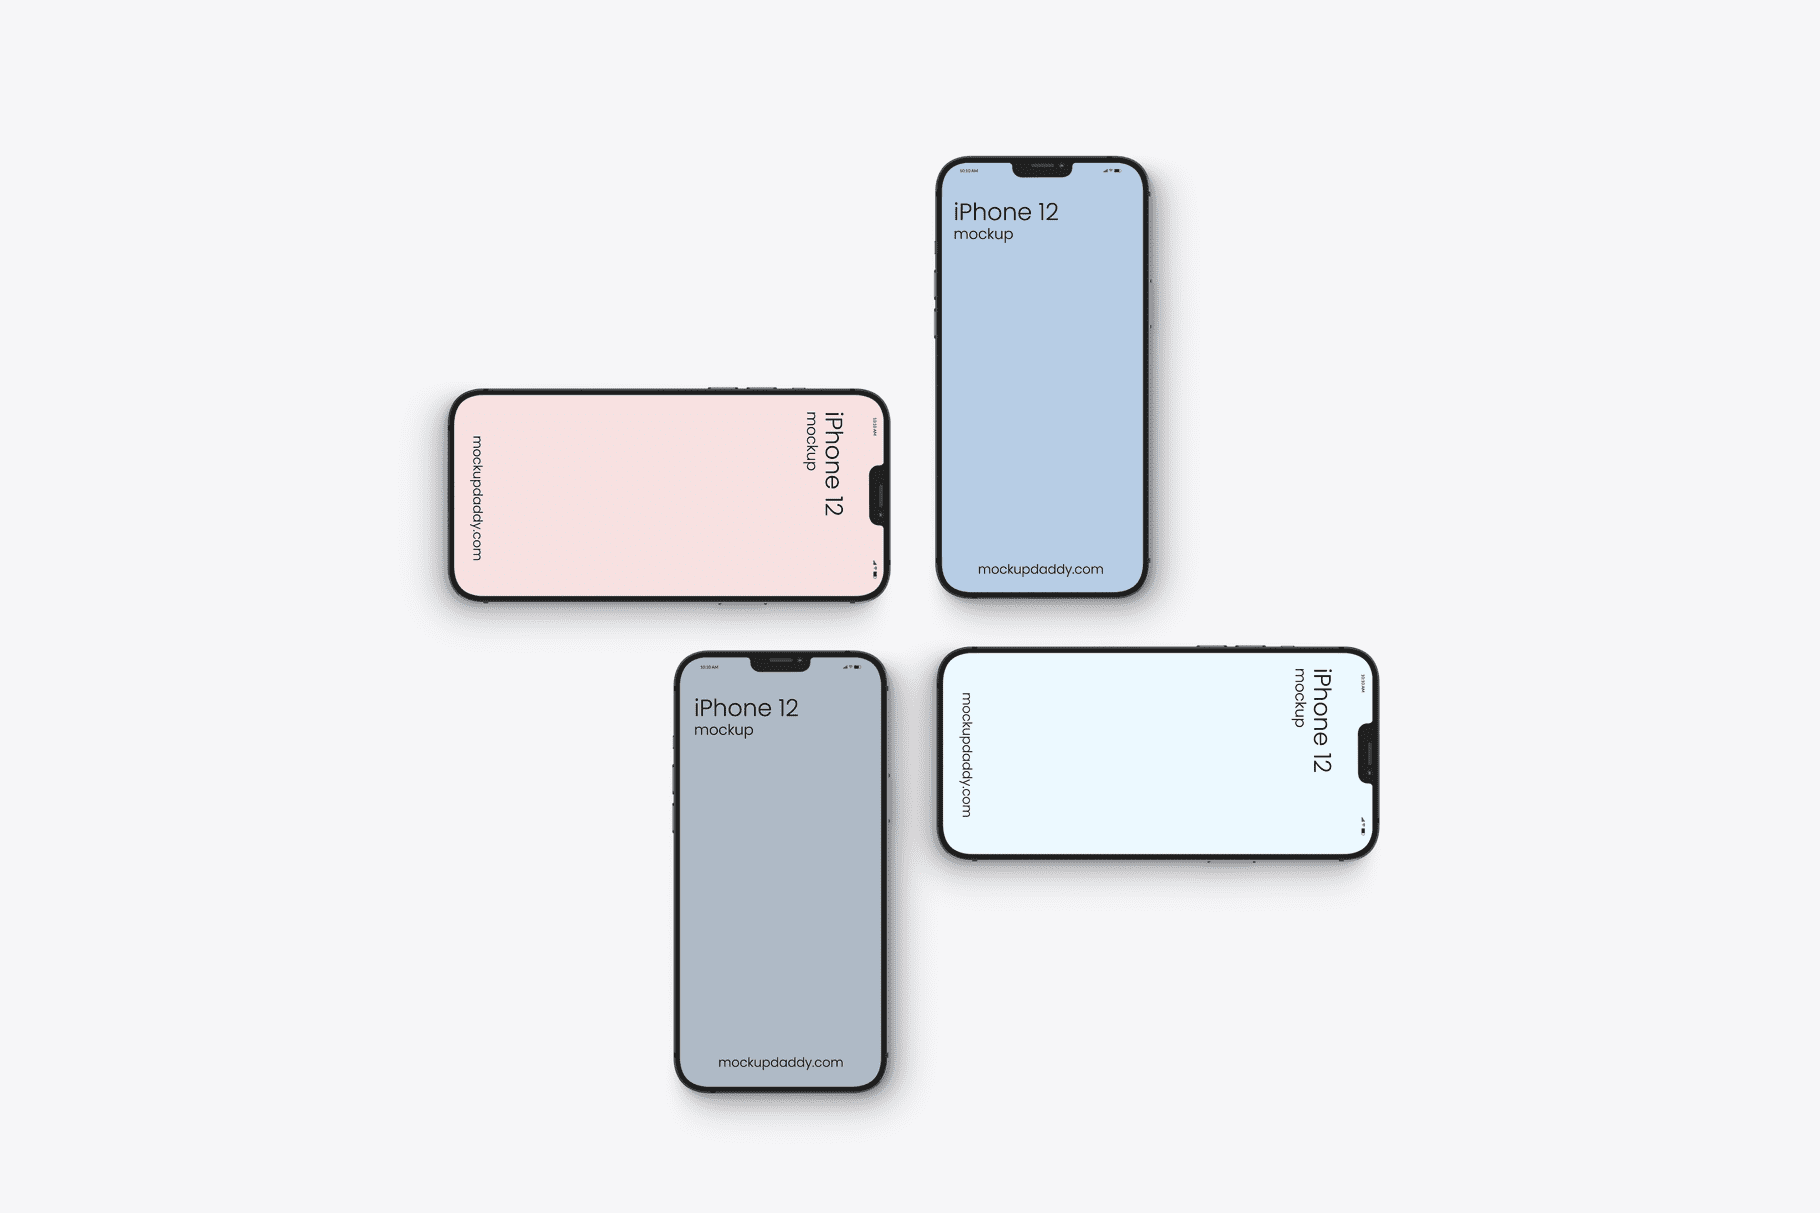 10+ iPhone 12 Mockups: Mini, Pro, Max. Free and Premium. Be In Trend With New Technology - iphone 12 10